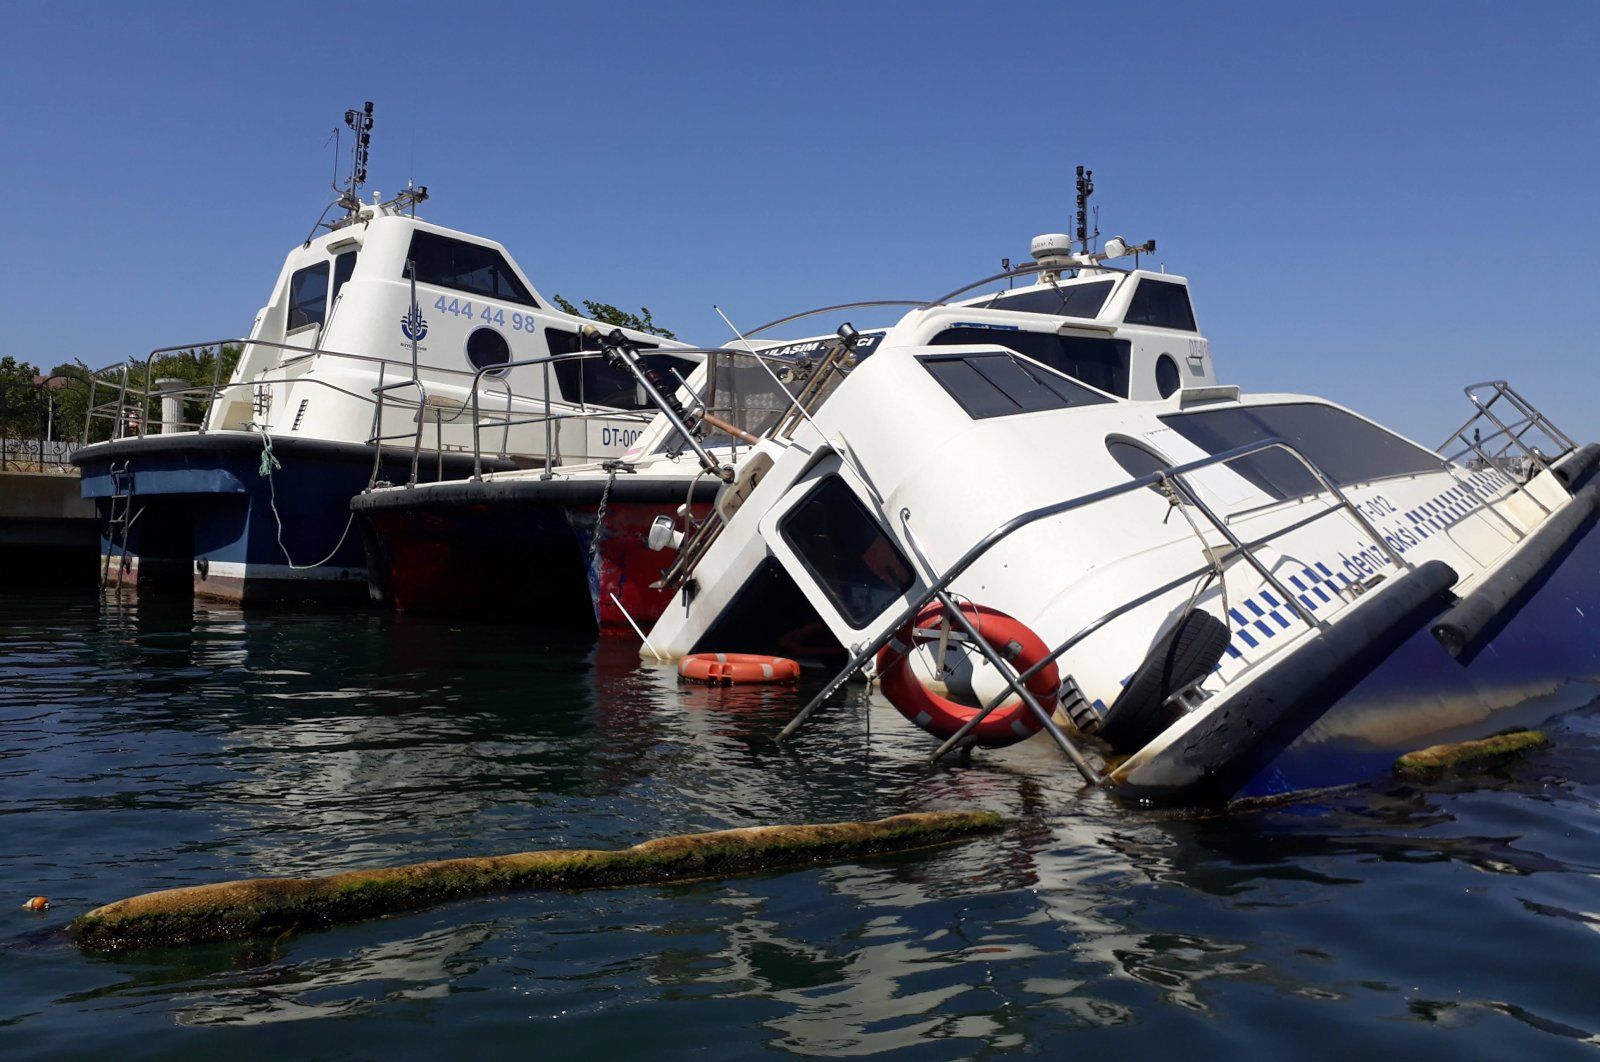 Sea taxis anchored at the Golden Horn, in Istanbul, Turkey, Aug. 12, 2020. (DHA Photo)